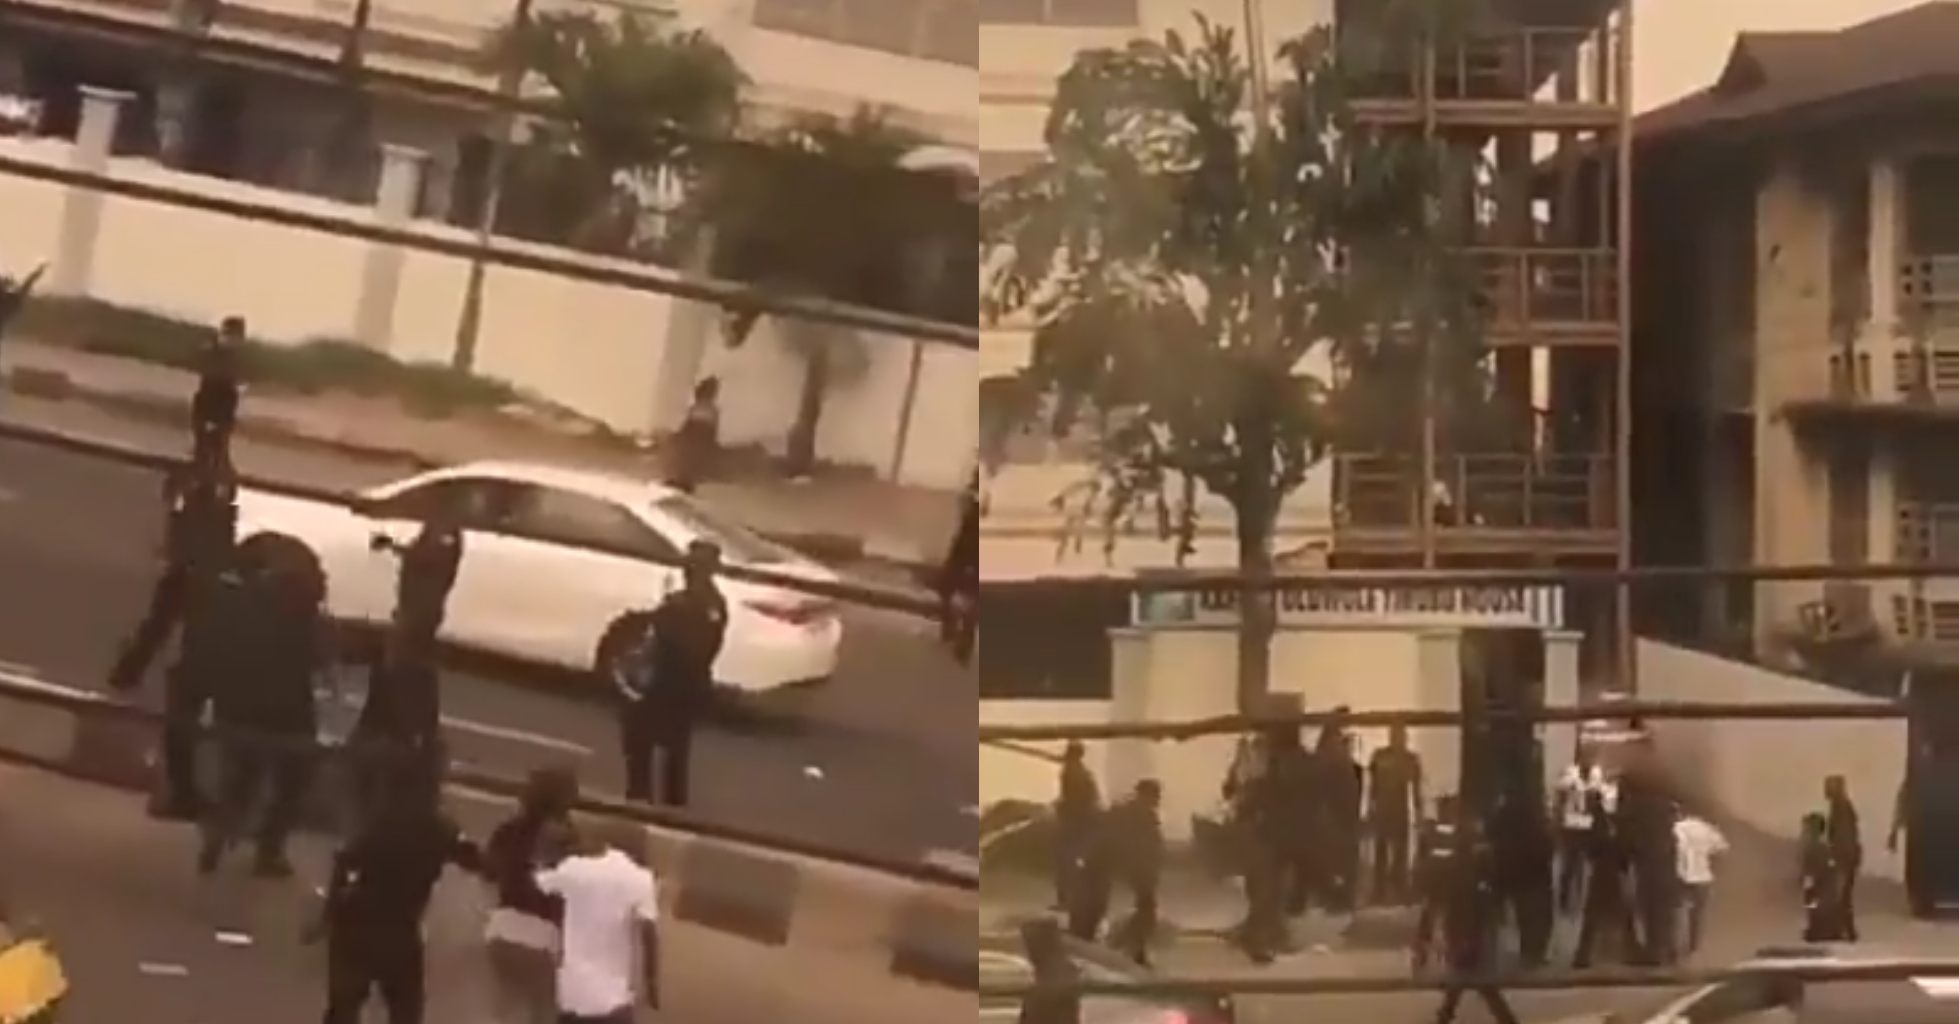 Policemen beat two female protesters brutally and mercilessly (video)